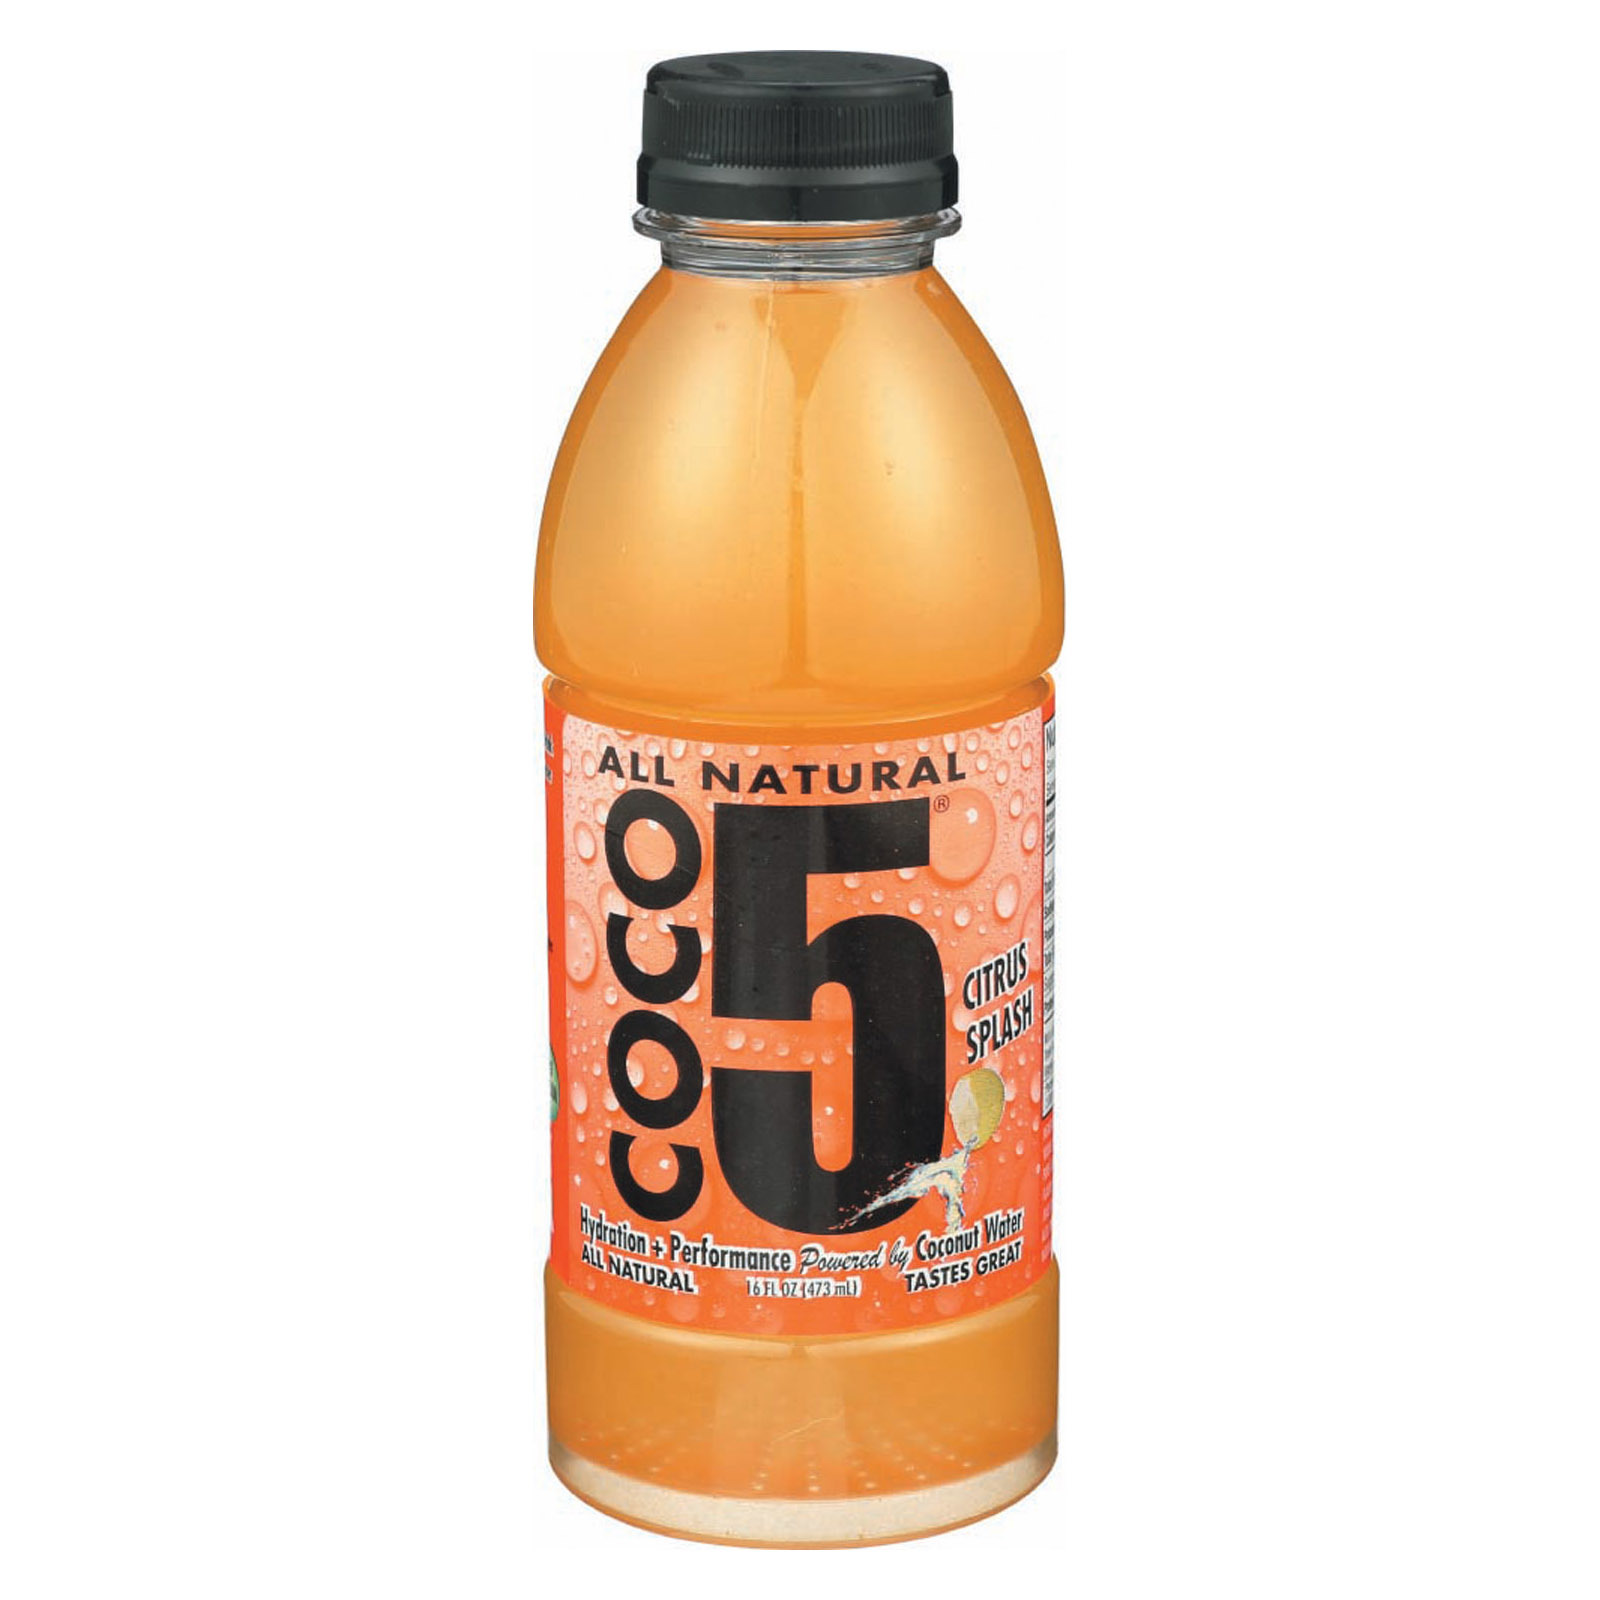 Coco5 Coconut Water - Orange - Case of 12 - 16.9 fl oz